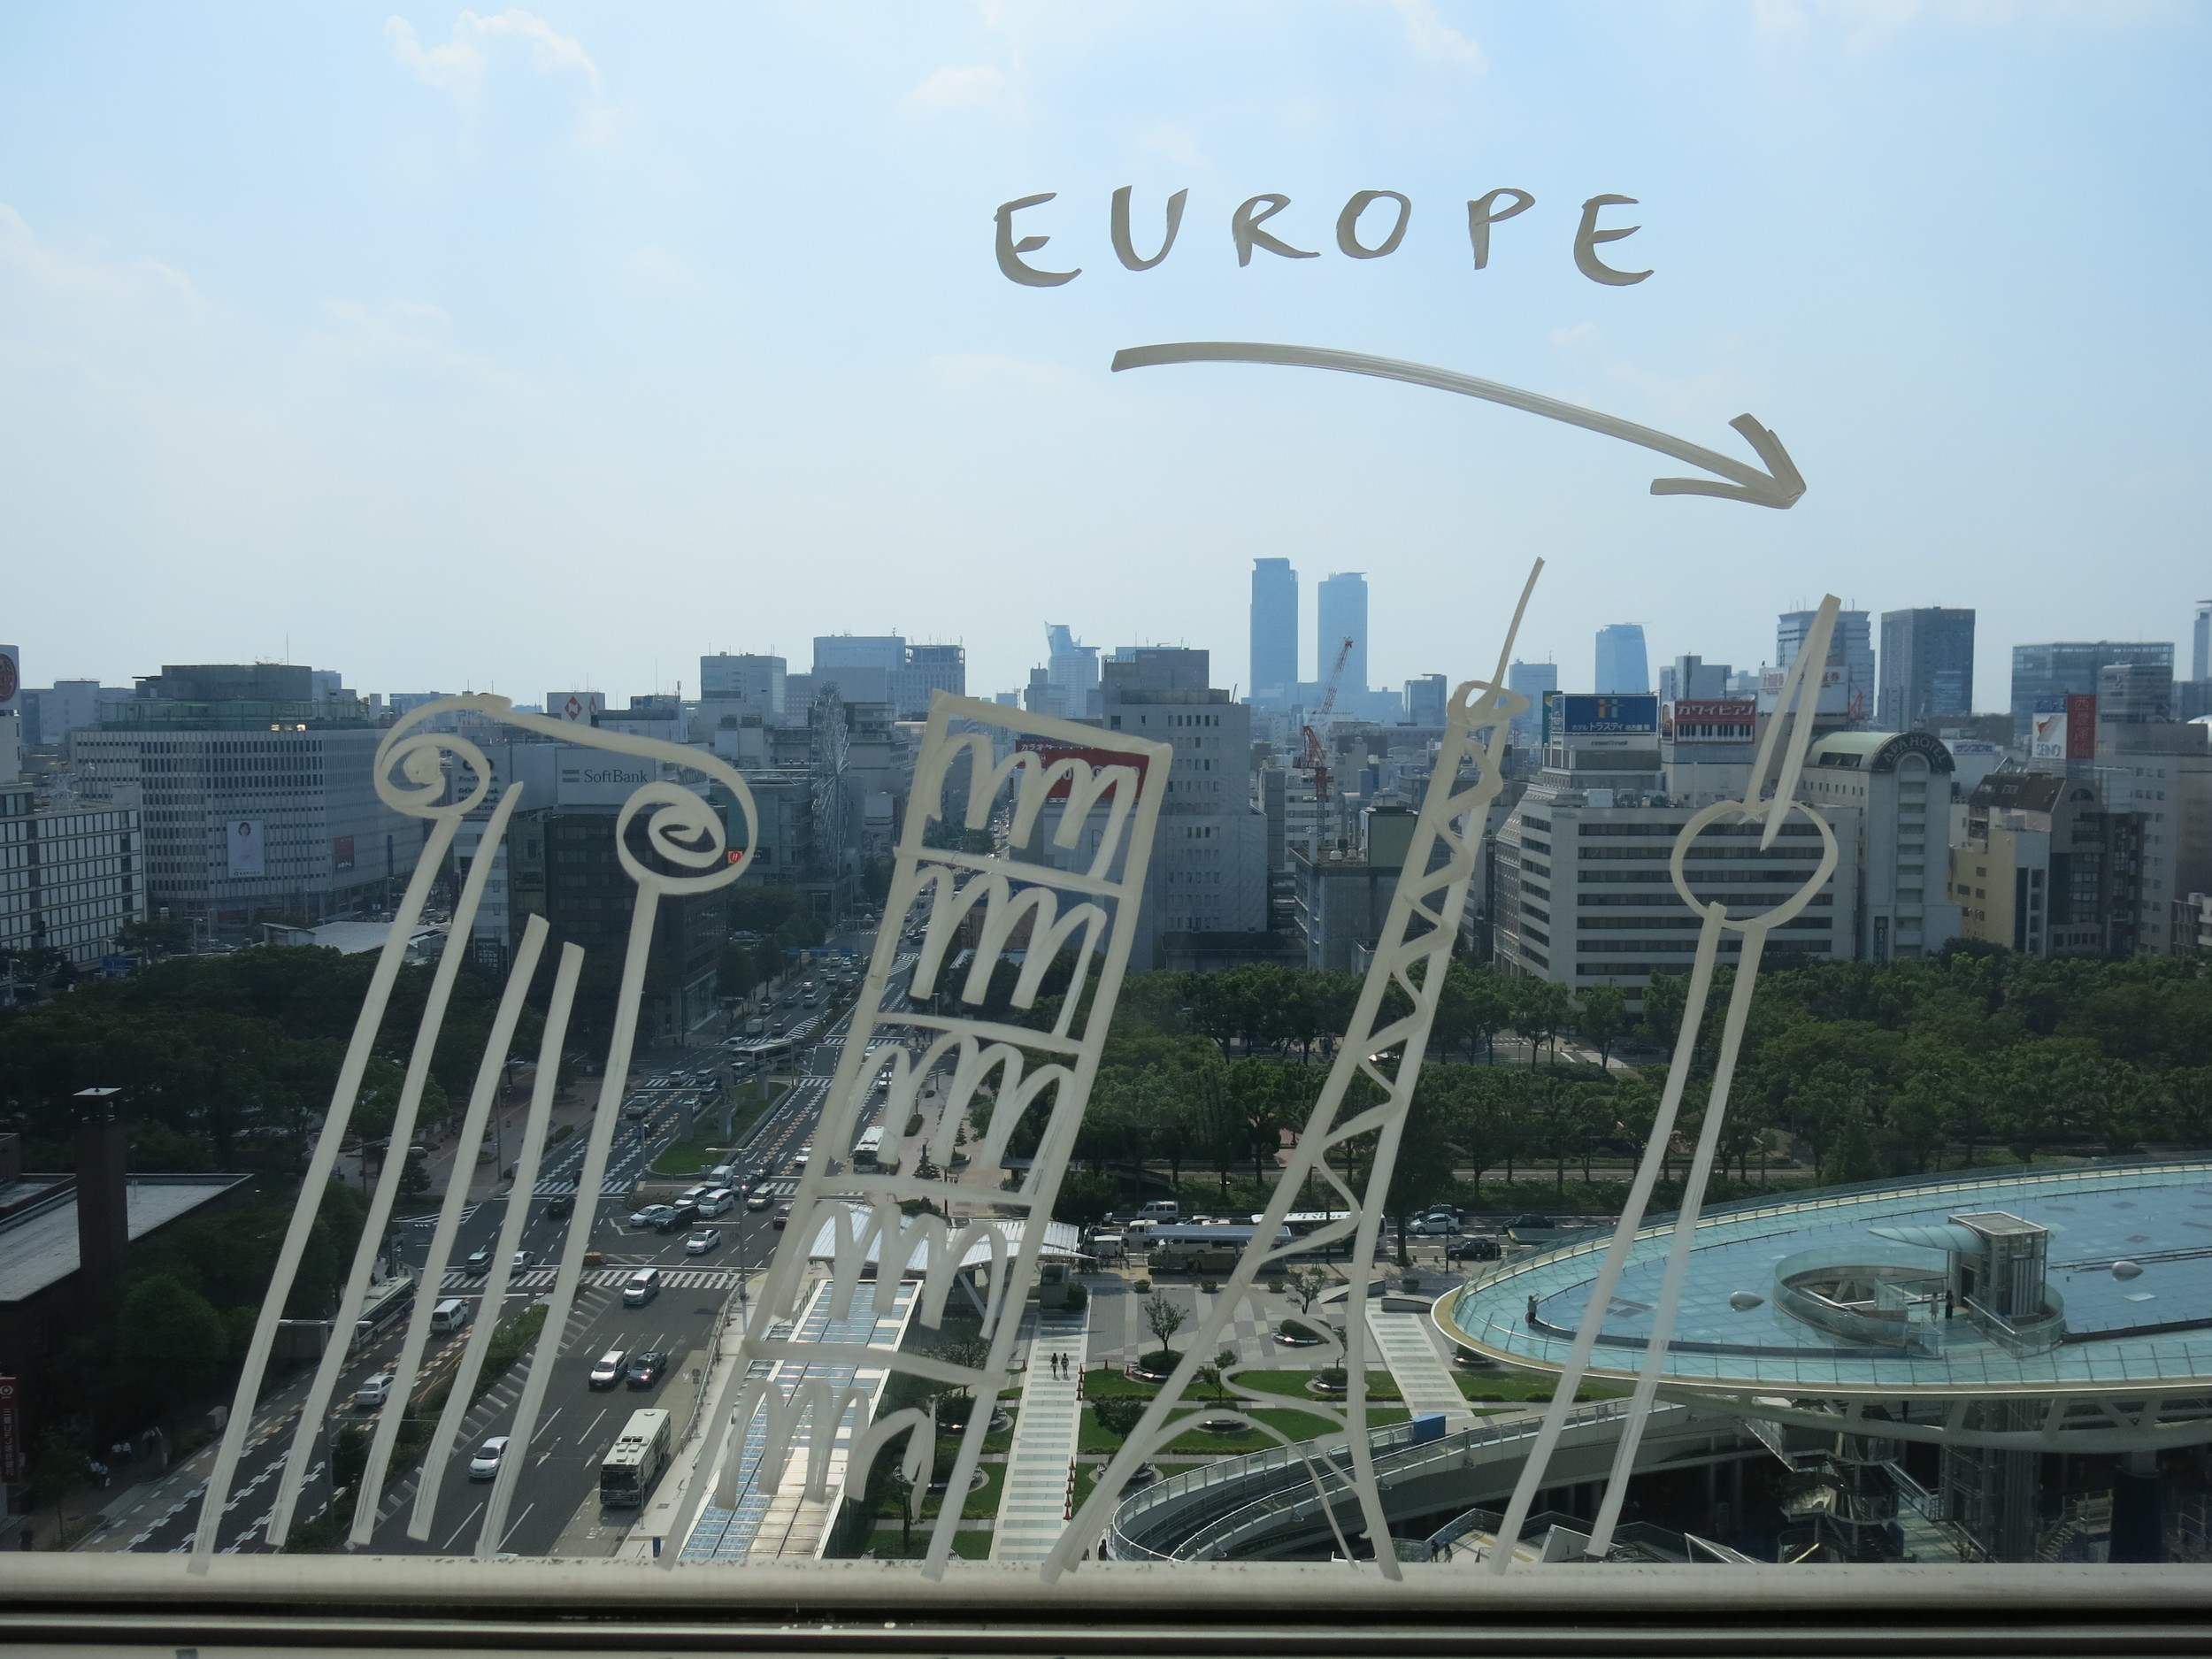 Romanian artist Dan Perjovschi's    The Top Drawing,    2013   on the window of the 11th floor-viewing balcony of the Aichi Arts Center.